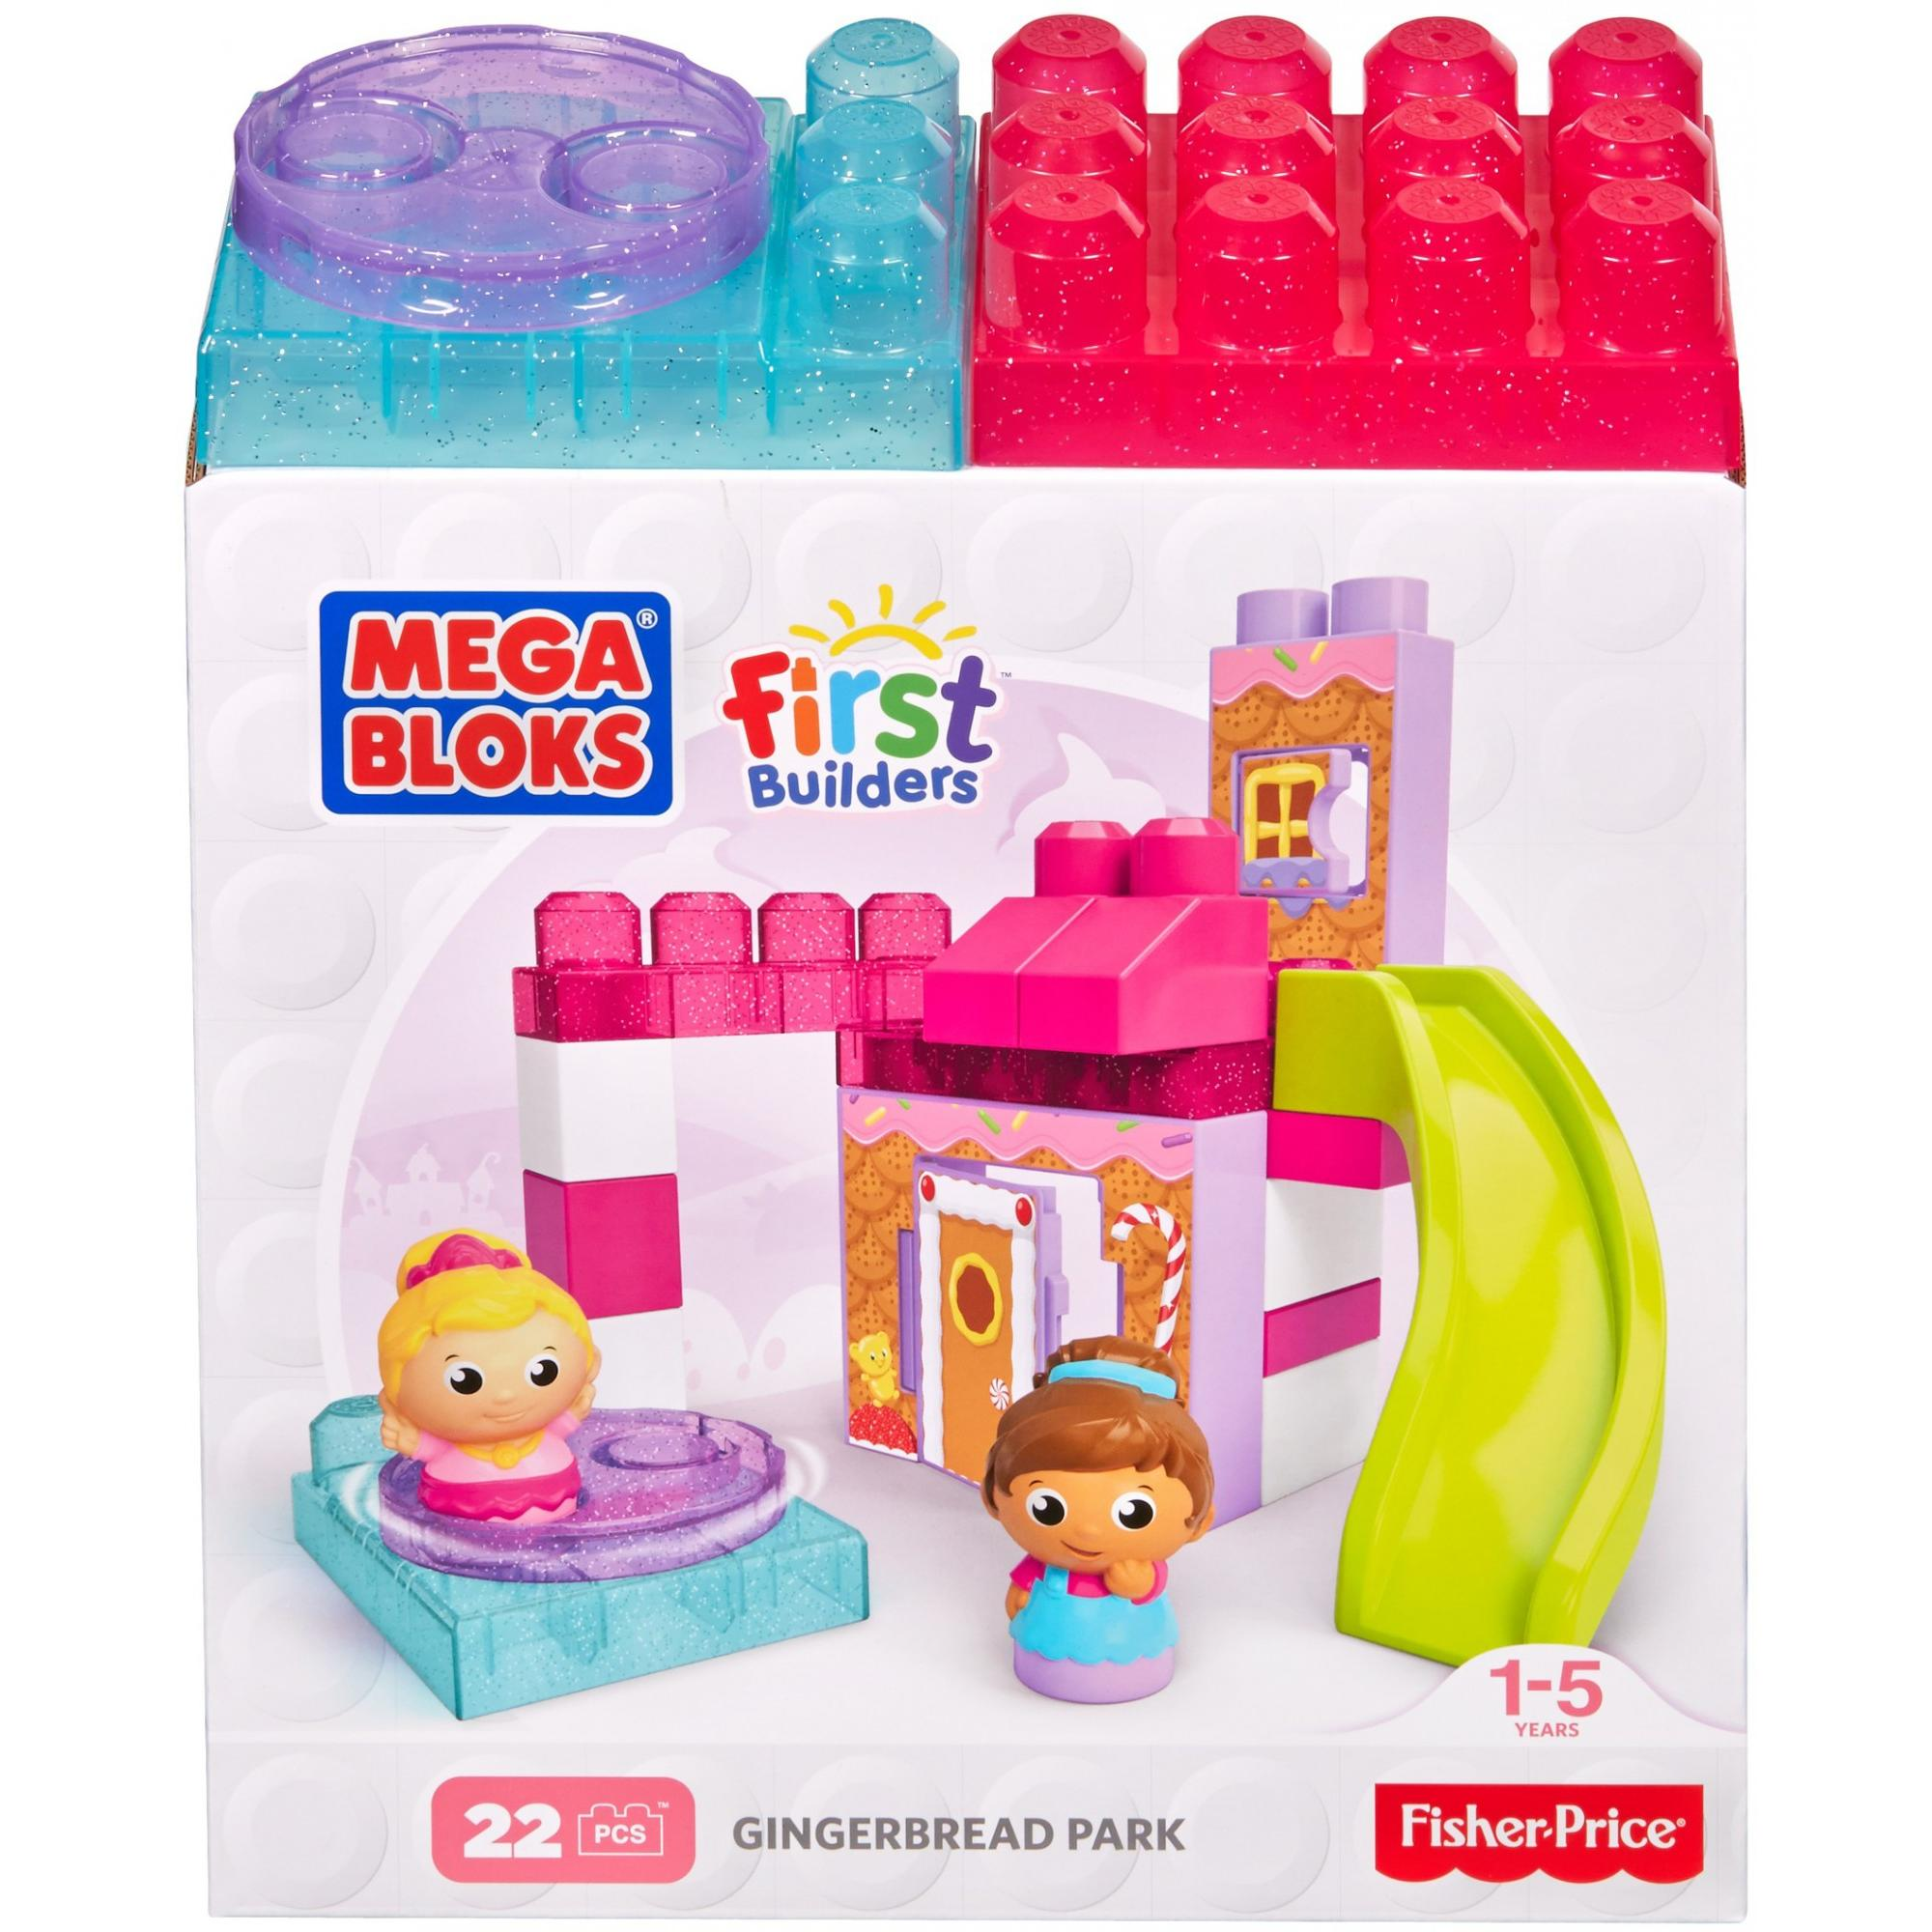 Mega Bloks First Builders Gingerbread Park Walmart Com